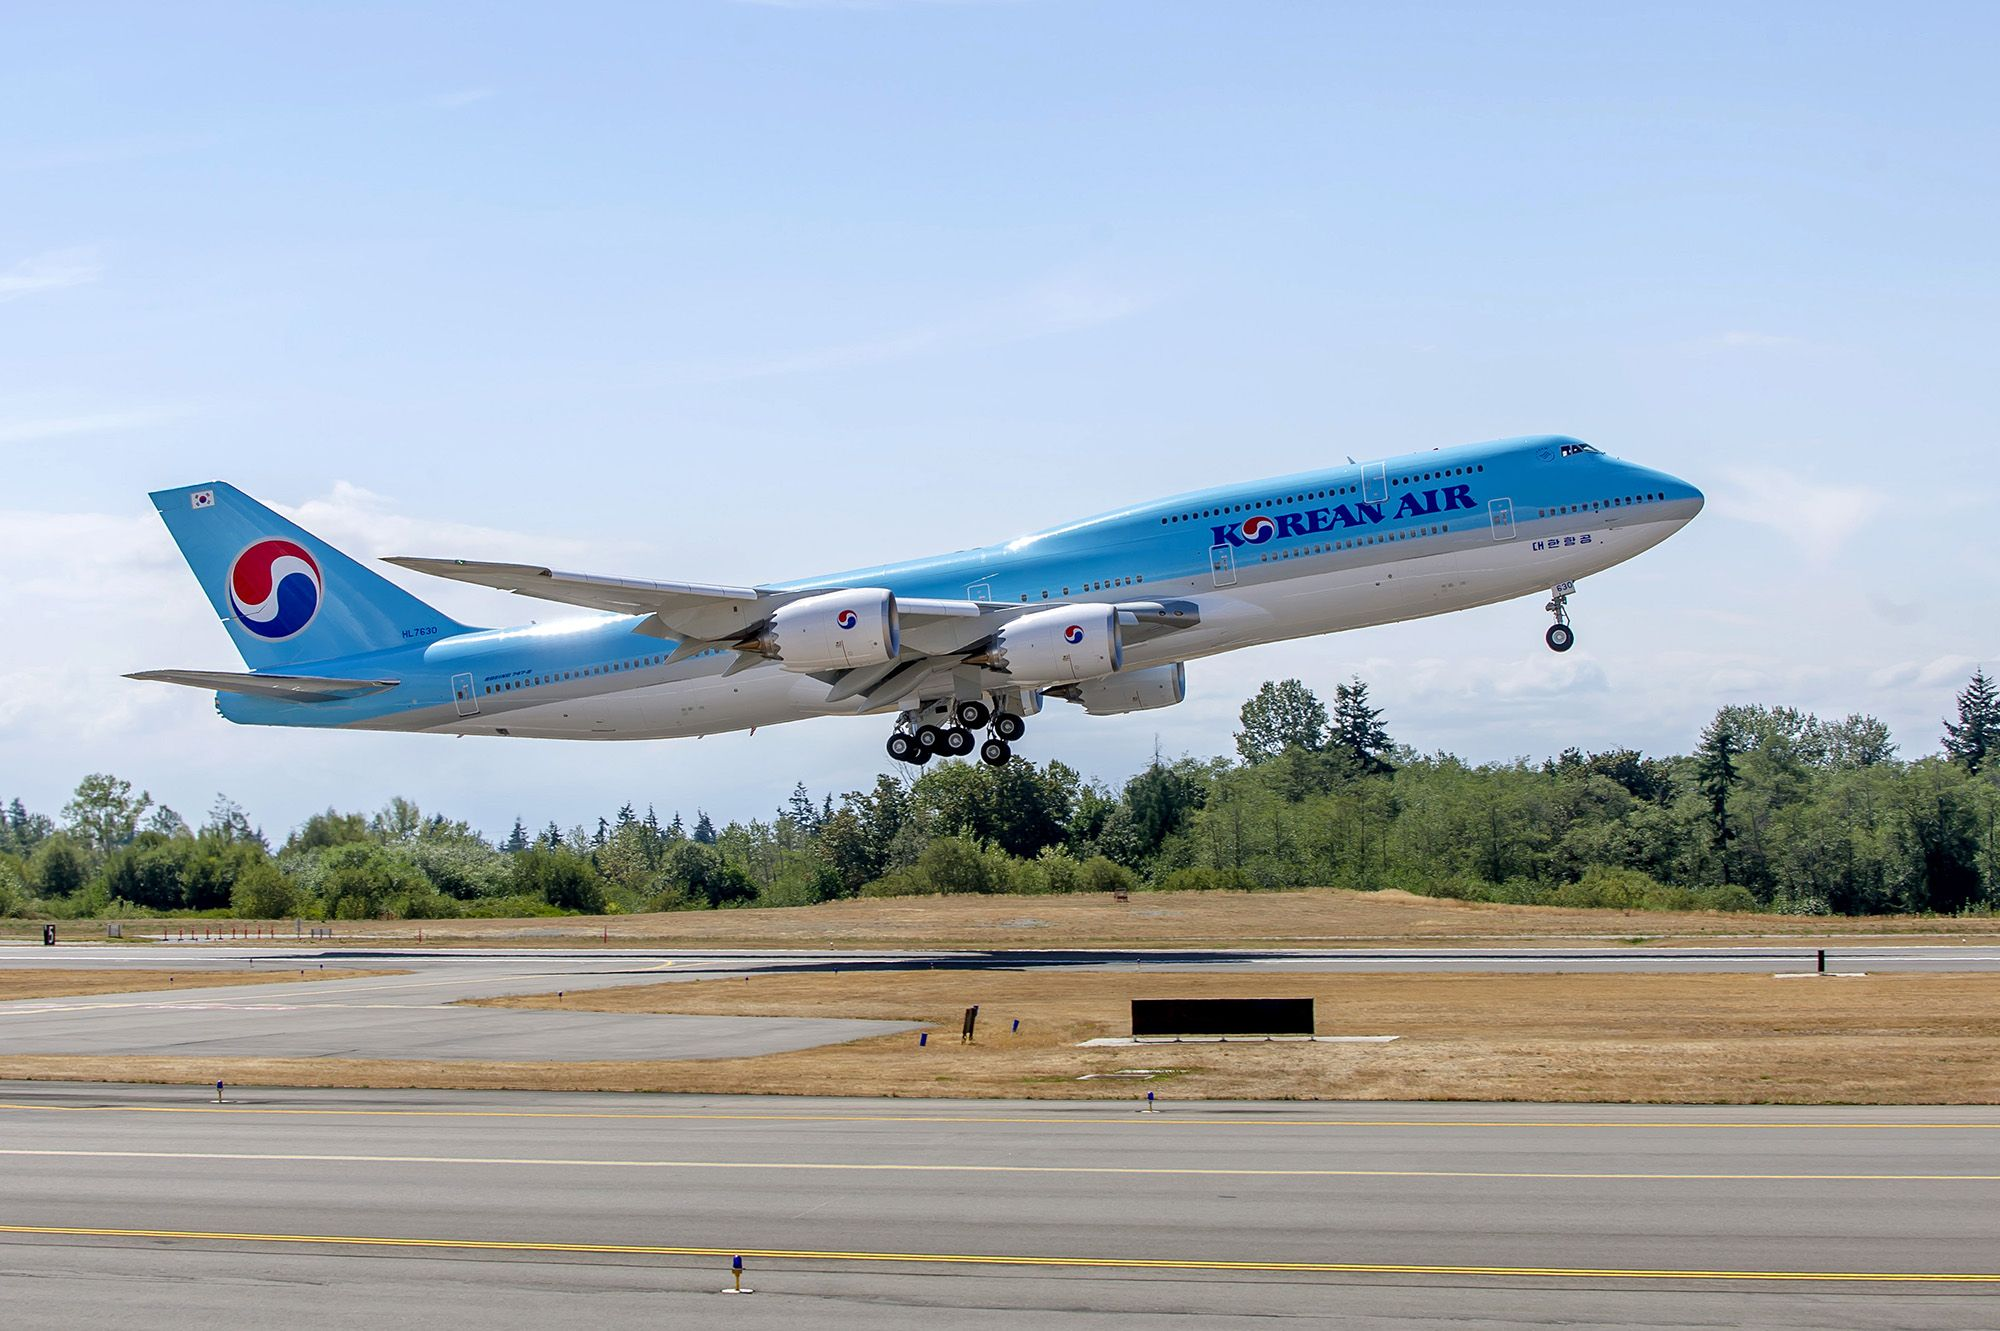 Korean air booking 18882028814 Korean air, Boeing 747